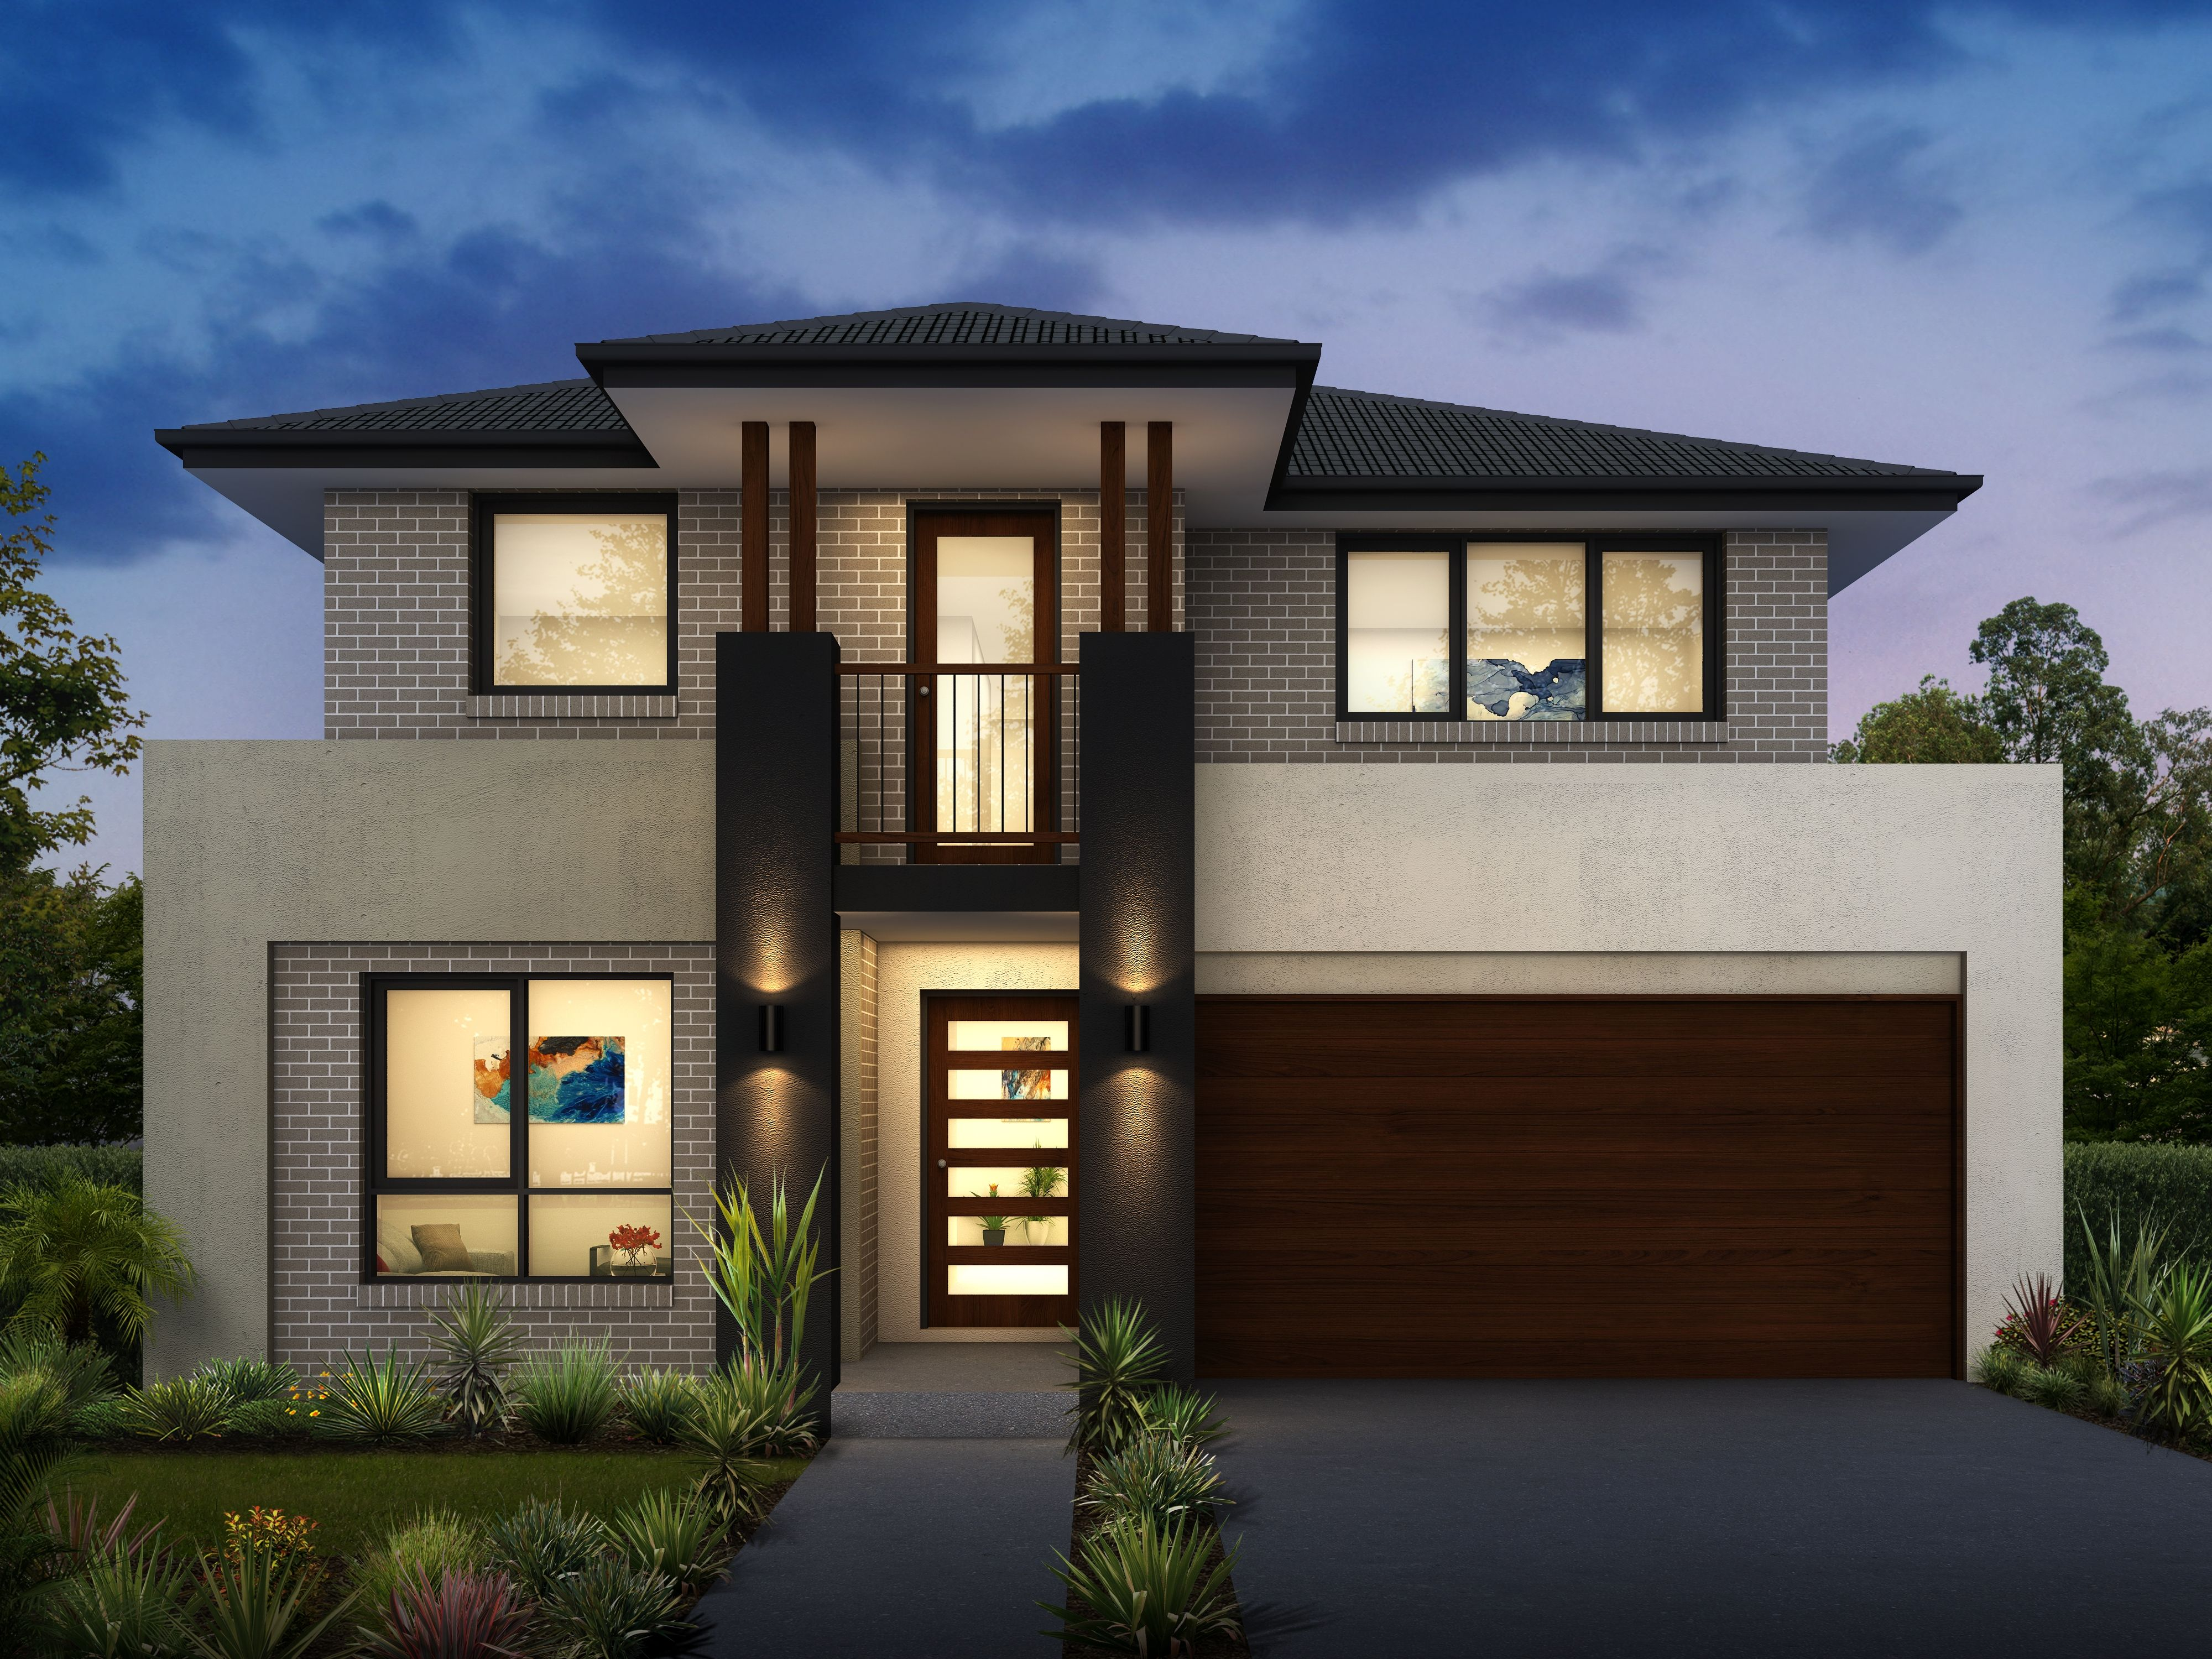 Bronte 25 Double storey home design ideal for narrow blocks